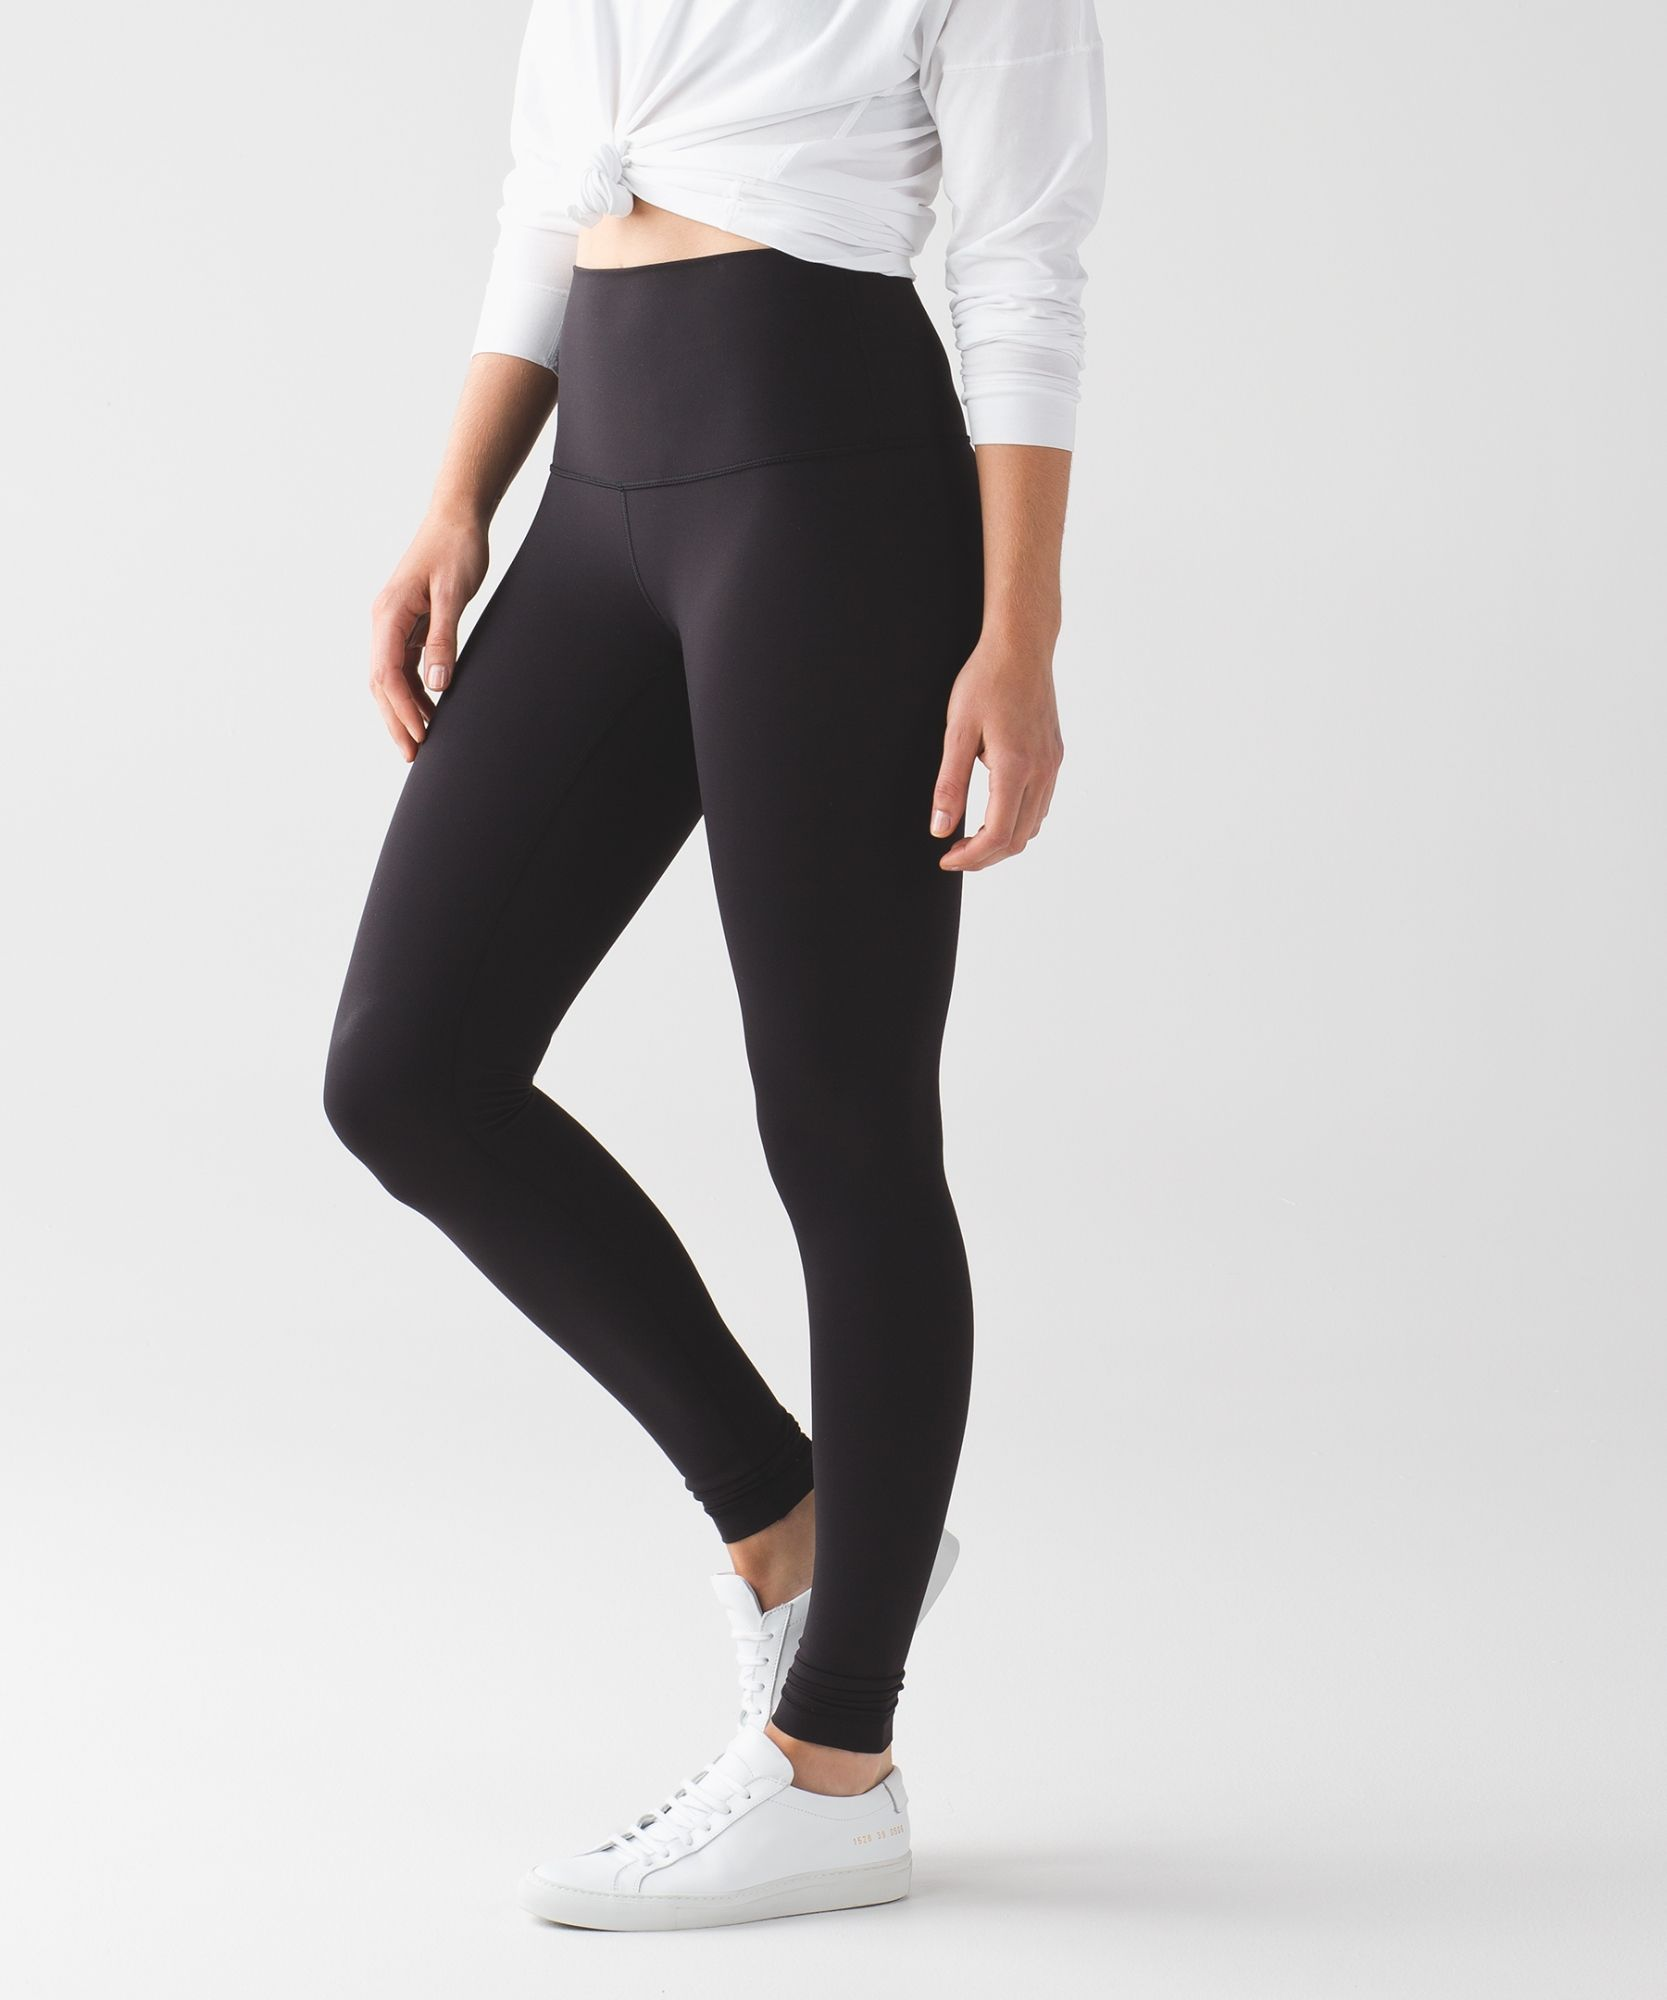 4de562f38661e These versatile, high-rise pants were designed to fit like a second  skin—perfect for yoga or the gym